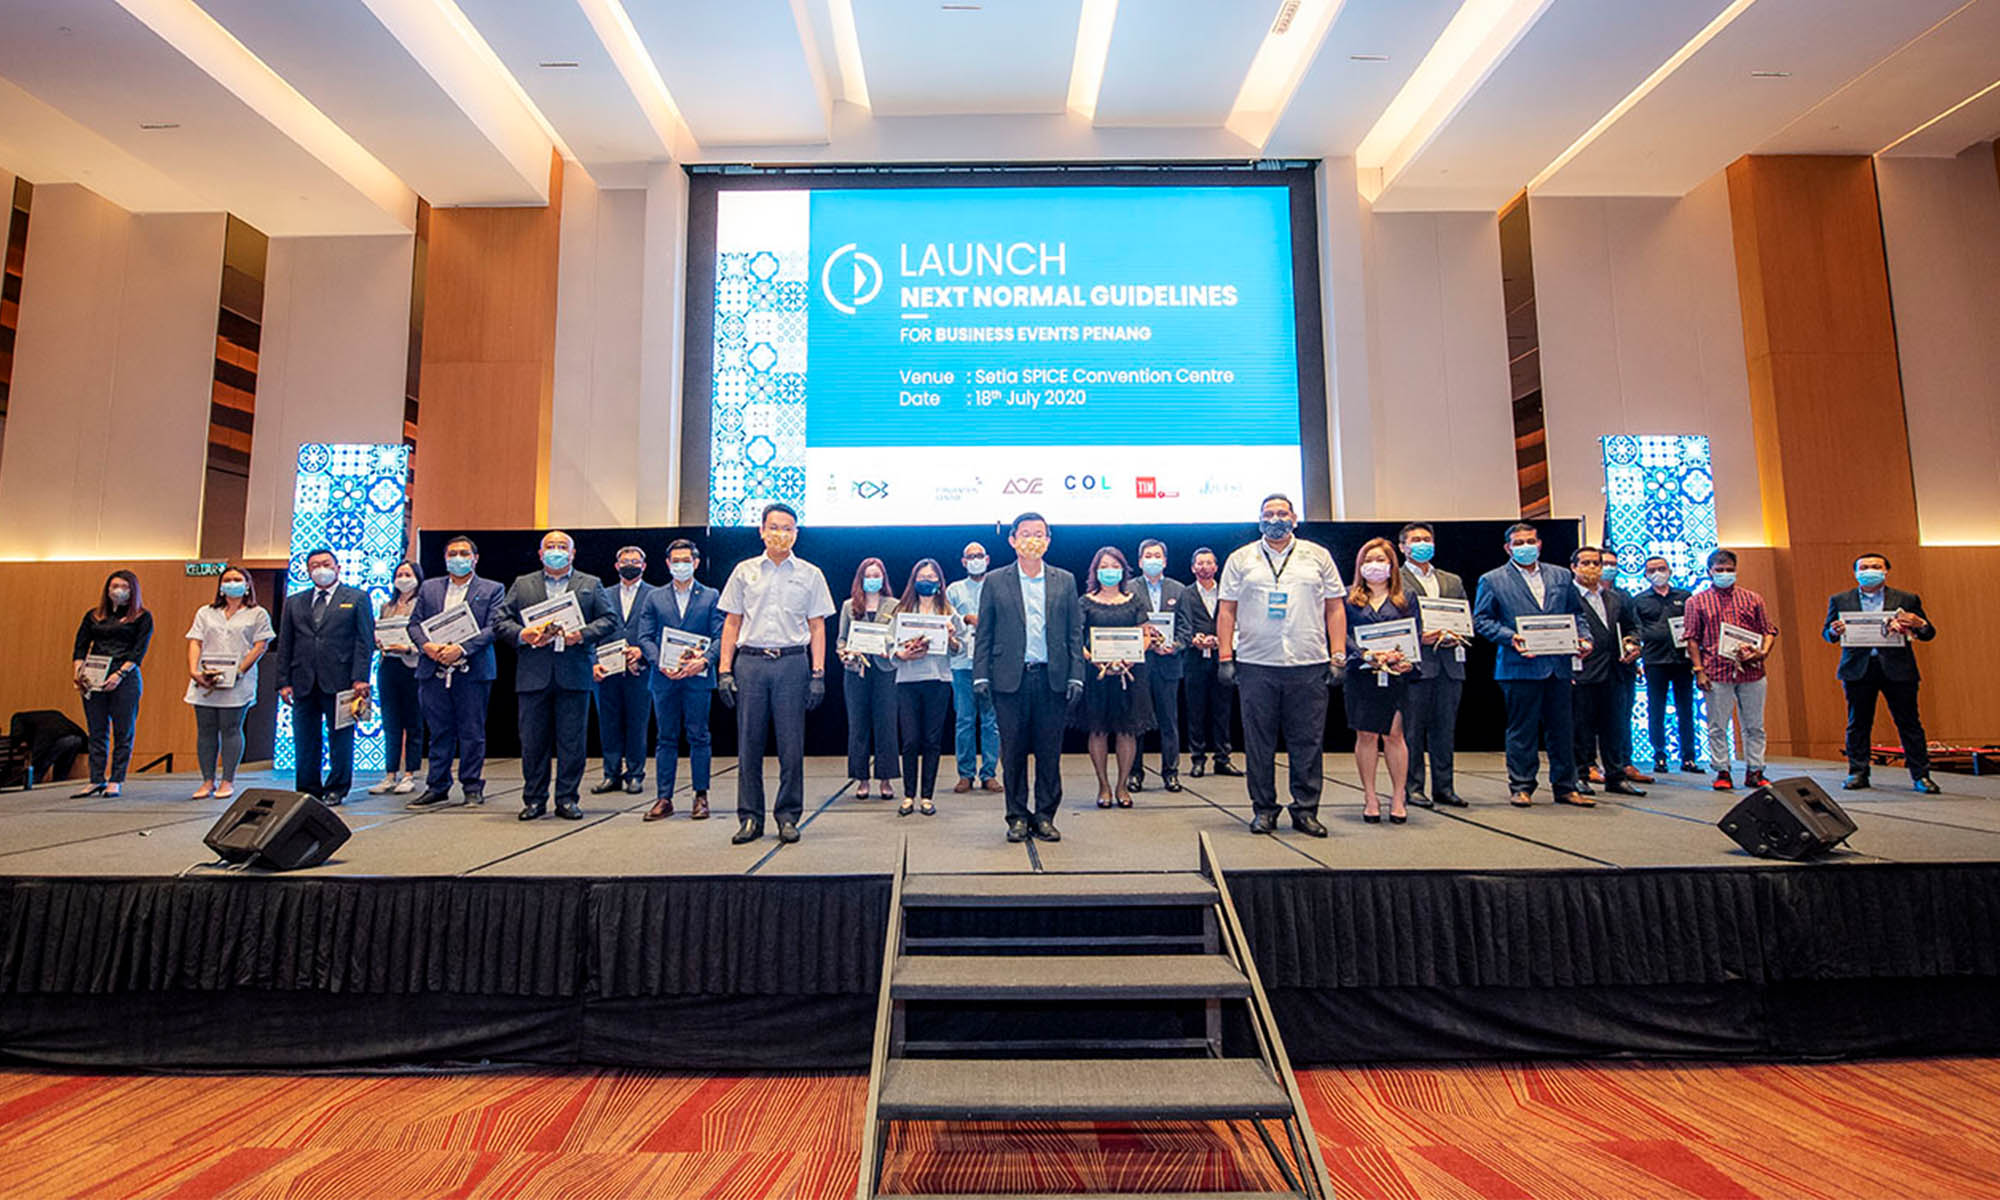 Penang launches new guidelines for business events